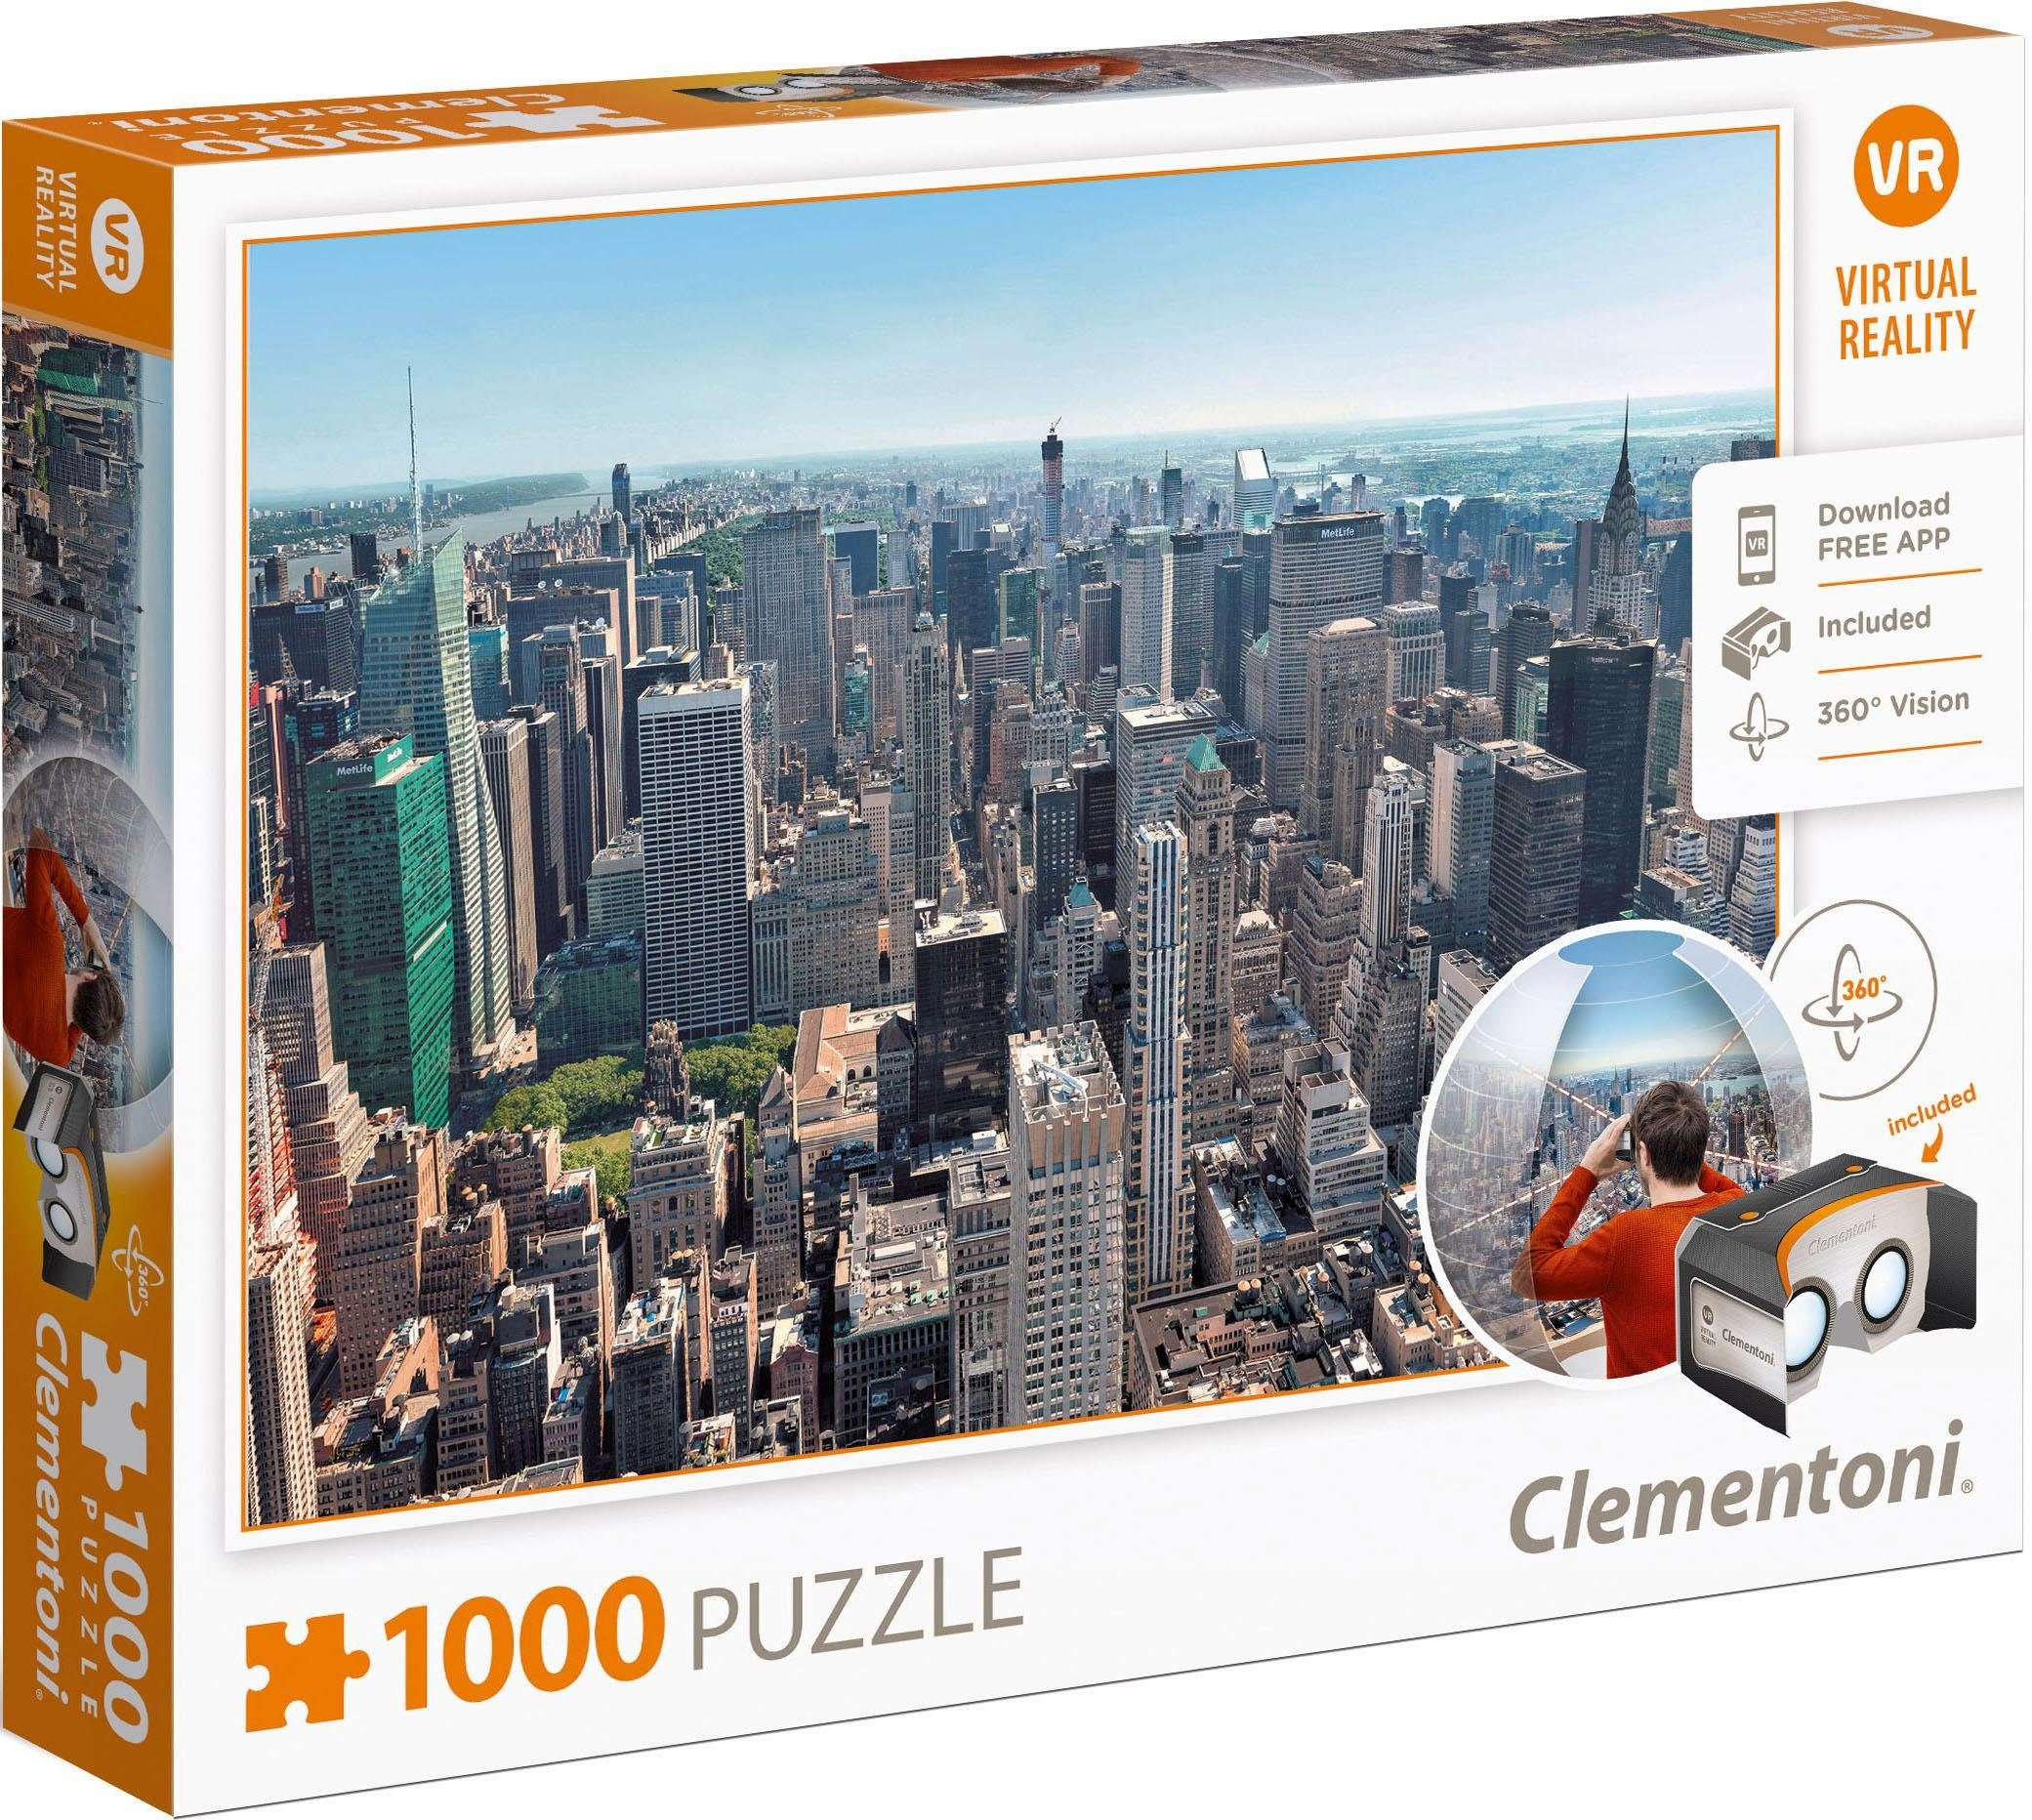 Clementoni Puzzle, 1000 Teile, »New York, Virtual Reality«